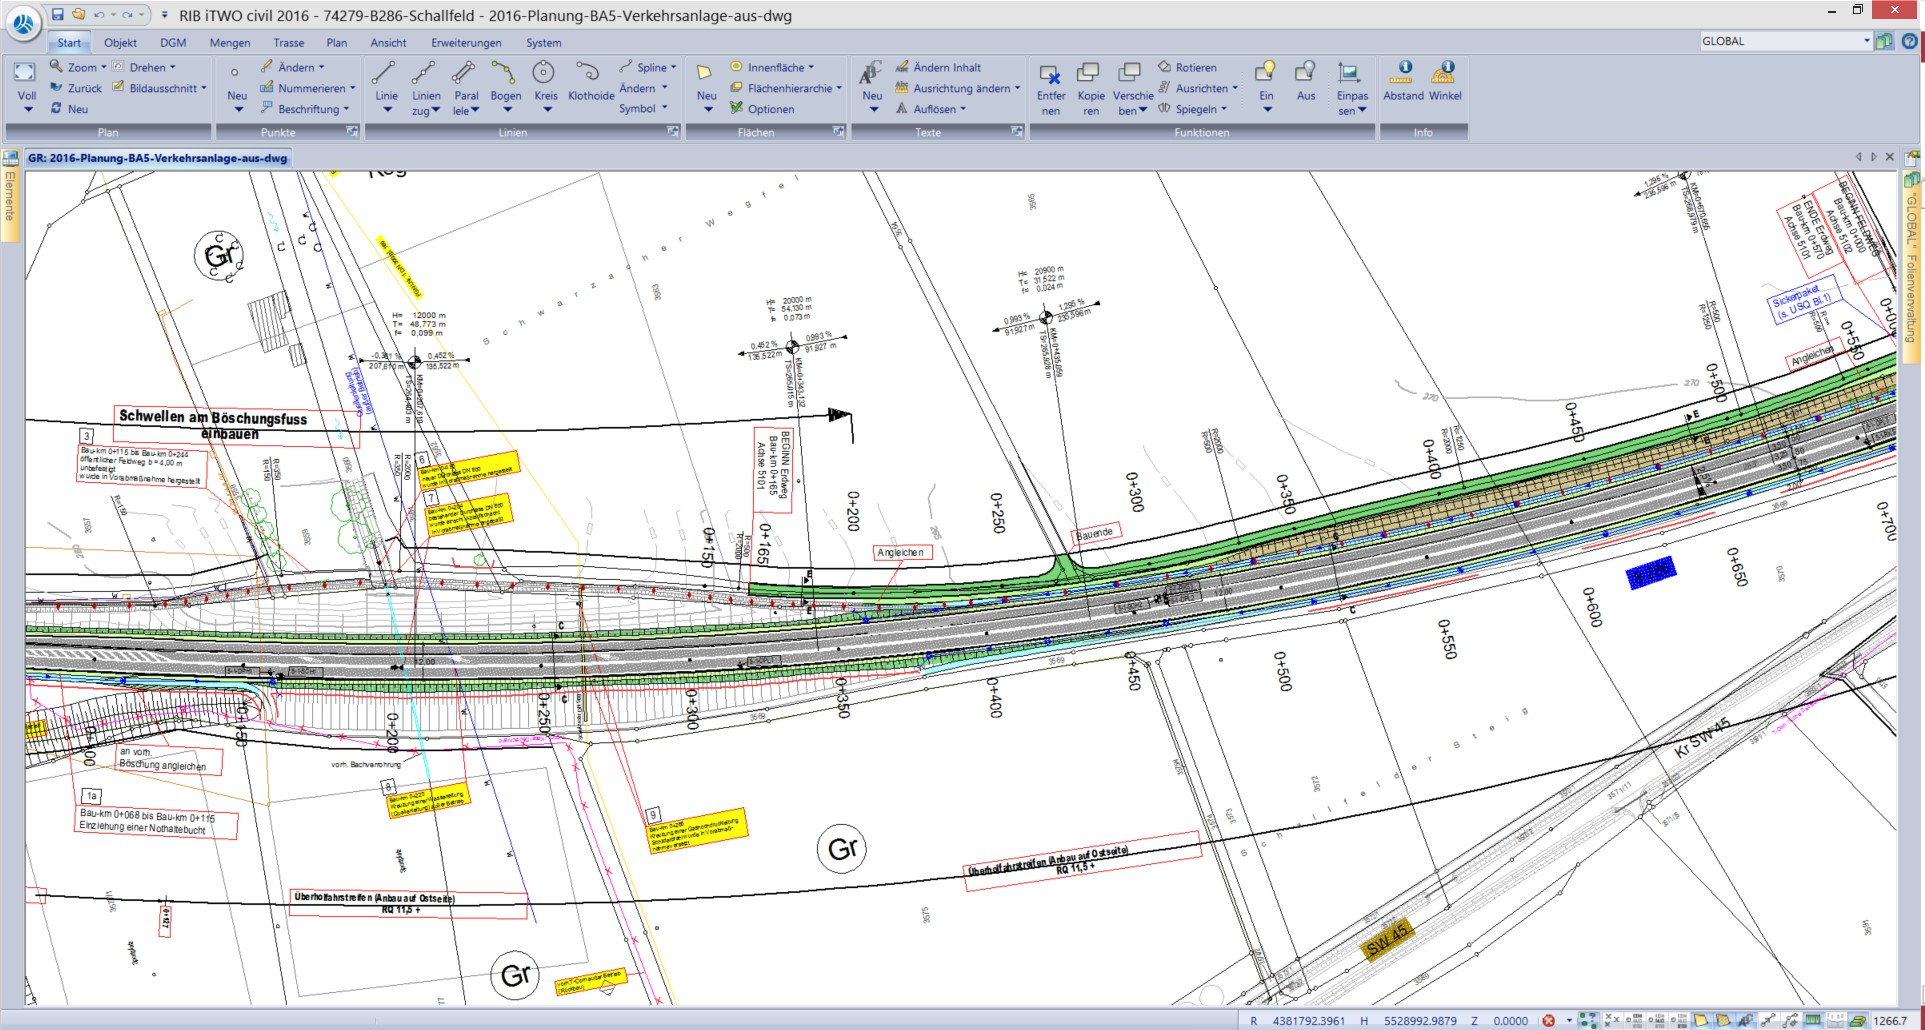 Surveyor and software expert Jens Martin created a new digital specification with RIB iTWO civil